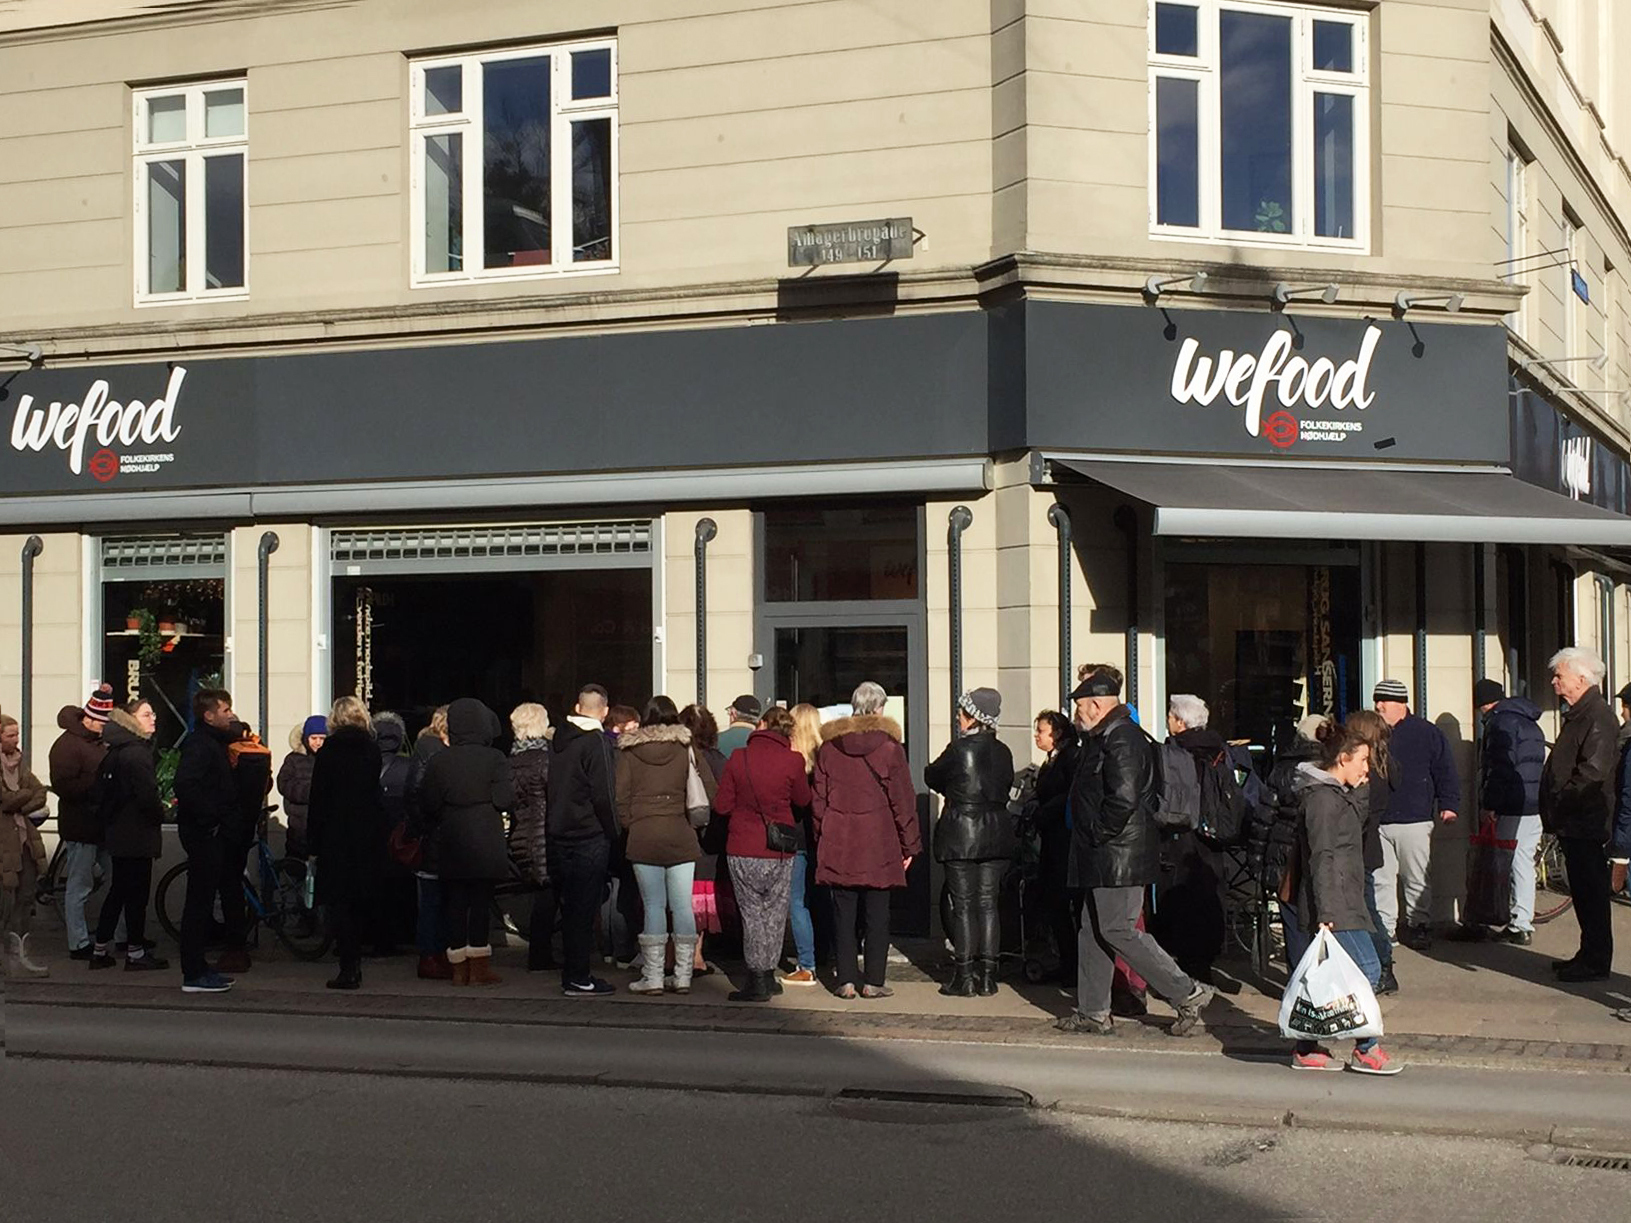 A crowd waits on the sidewalk for the WeFood grocery store